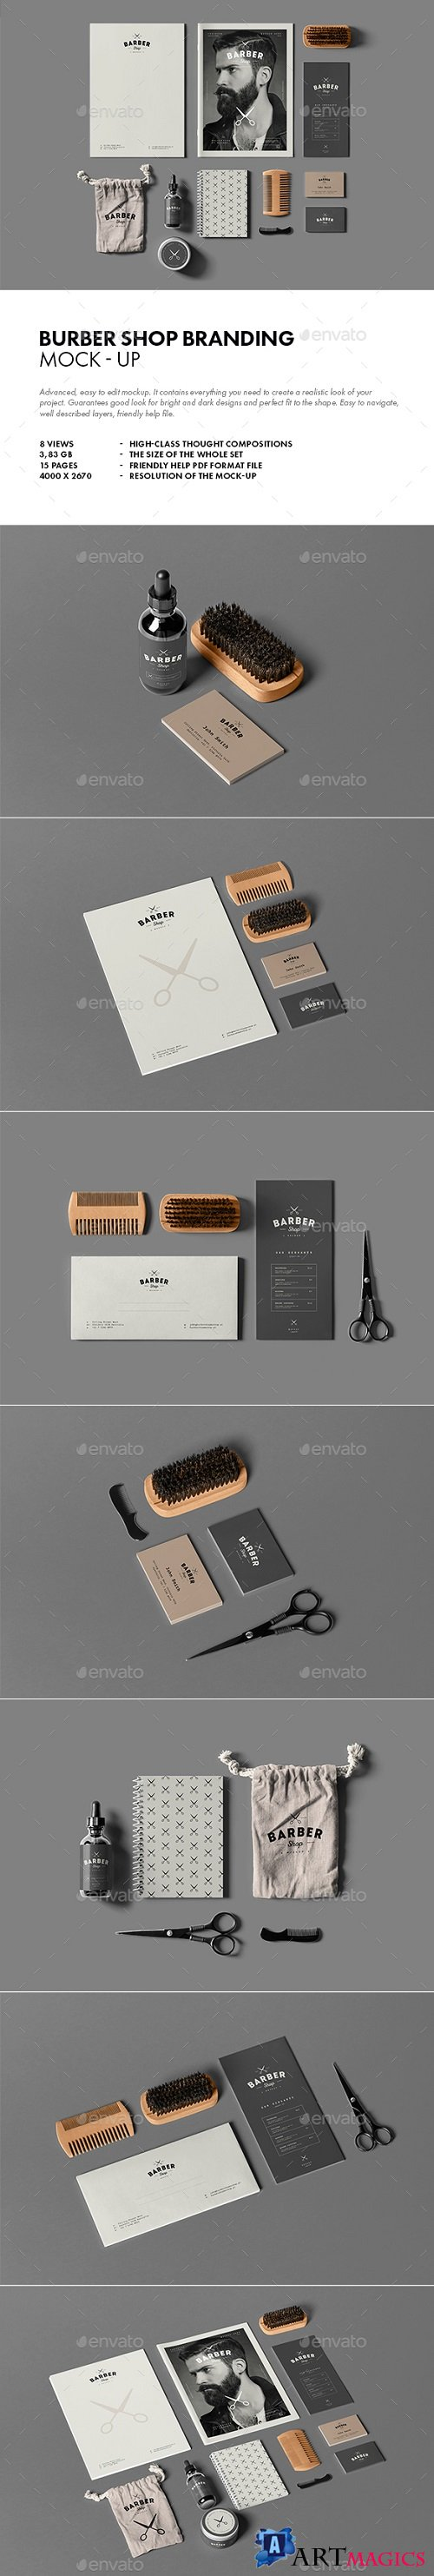 Barber Shop Branding Mock-up - 21570907